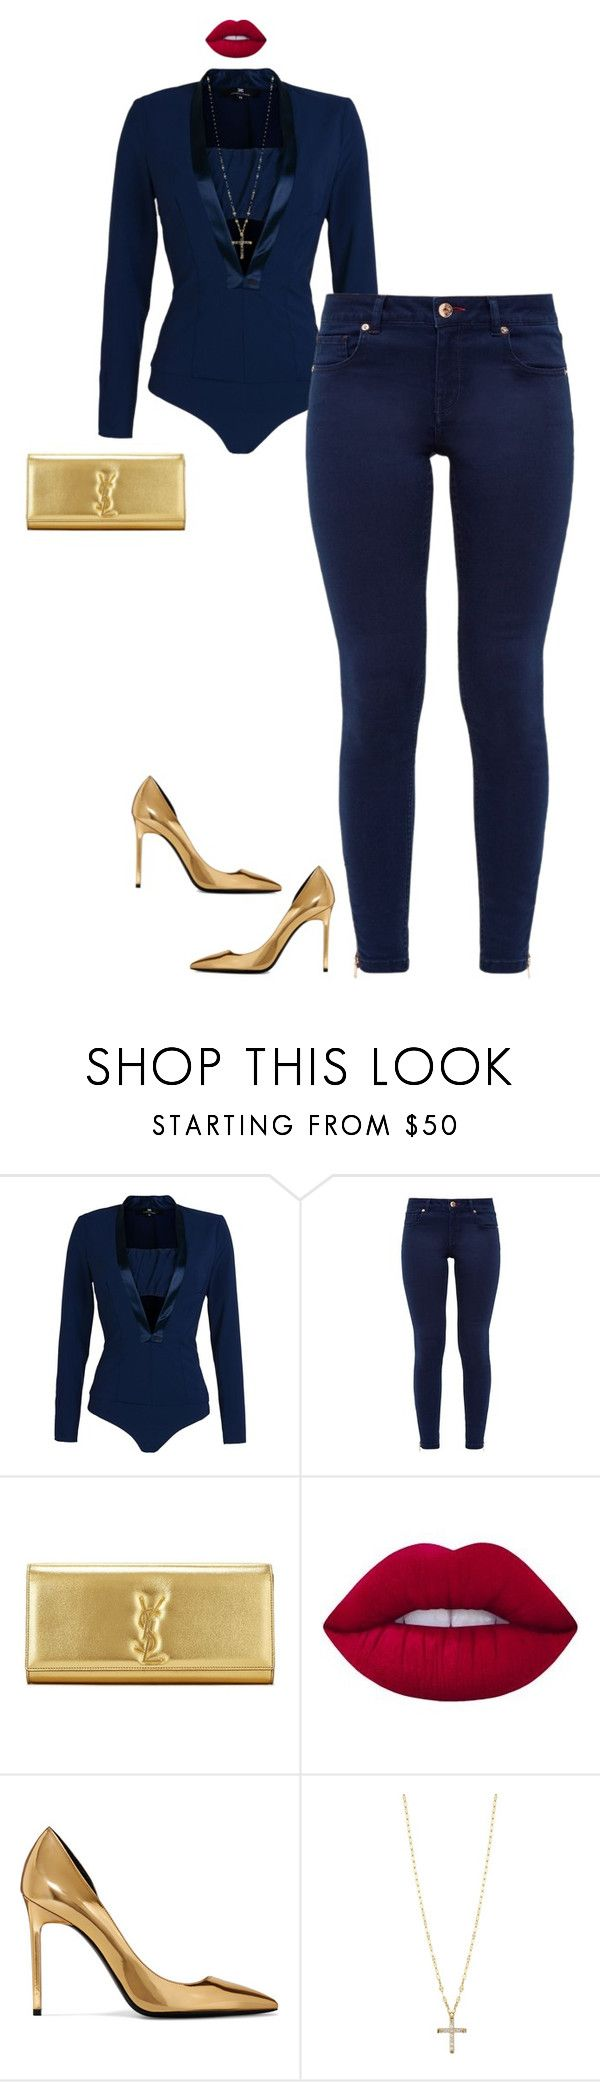 """""""Untitled #332"""" by sb187 ❤ liked on Polyvore featuring Elisabetta Franchi, Ted Baker, Lime Crime, Yves Saint Laurent and Lana Jewelry"""